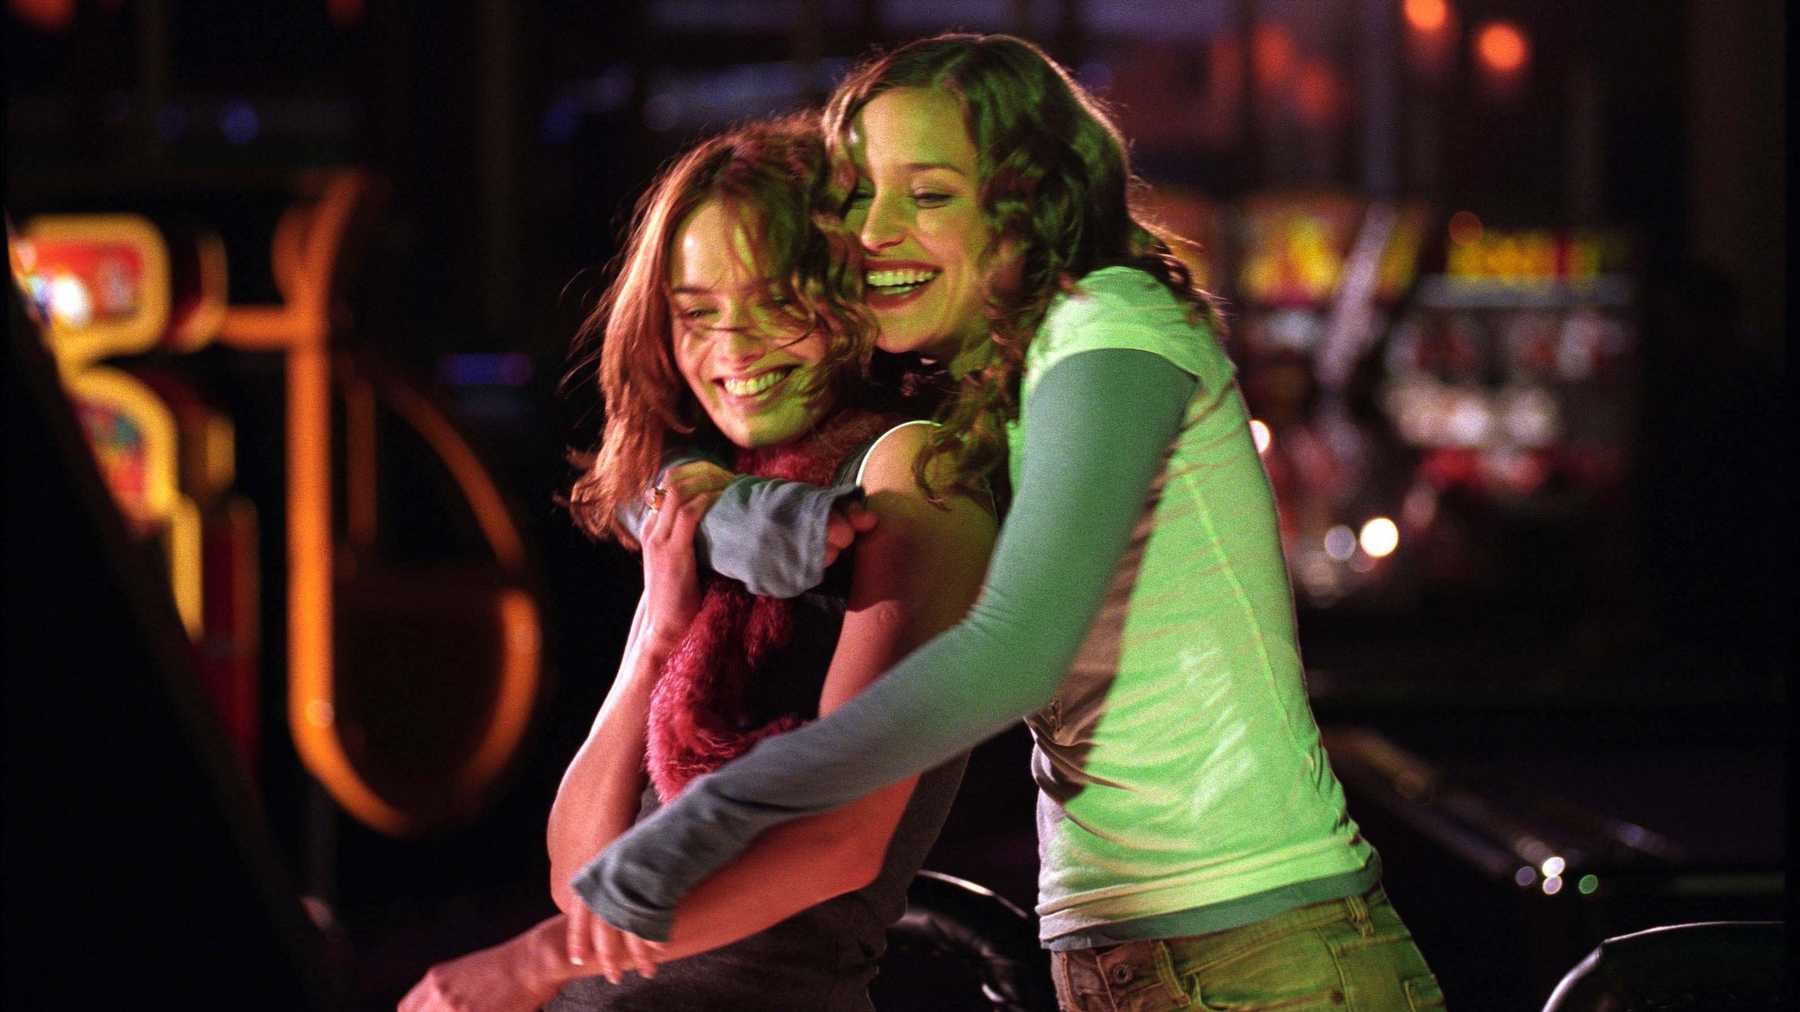 Luce (left) and Rachel (right) on a night out